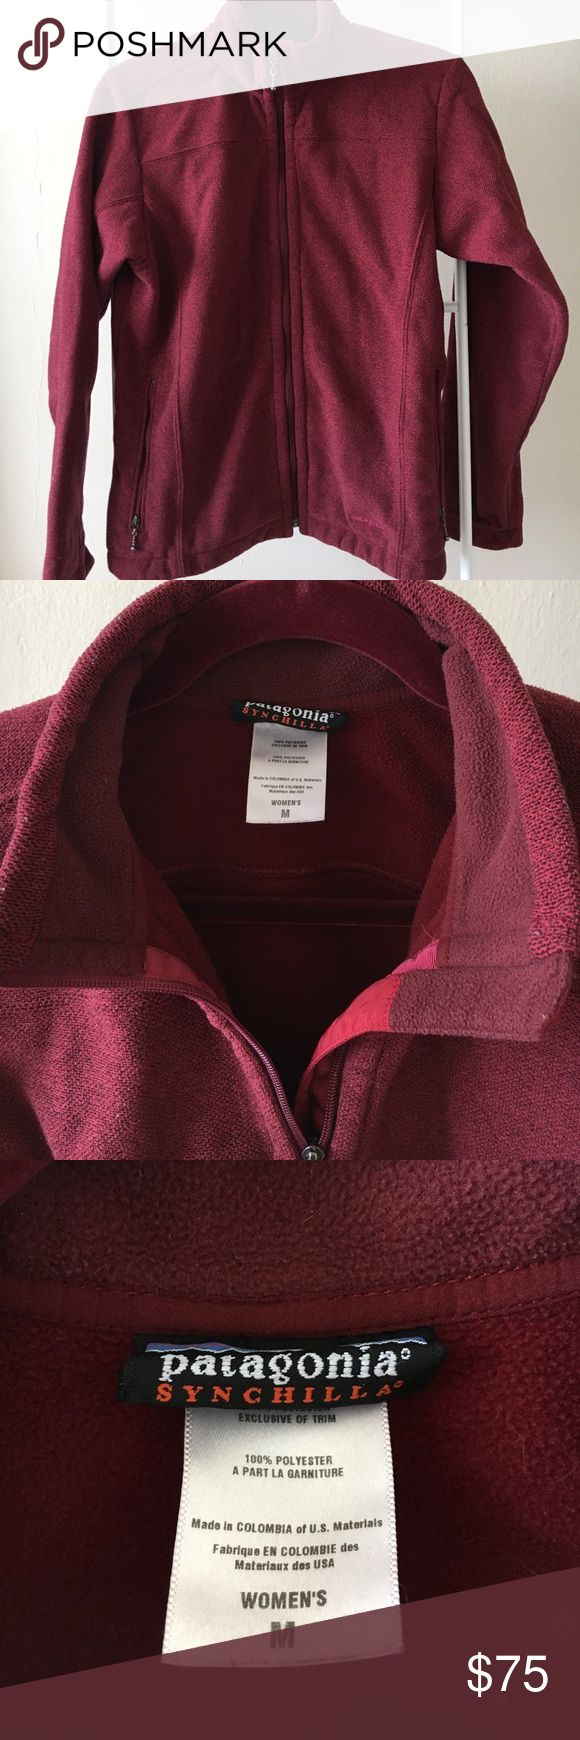 Patagonia Synchilla Jacket Perfect condition. 100 % polyester with fleece lining. Super warm and well insulated. Maroon color. Patagonia Jackets & Coats